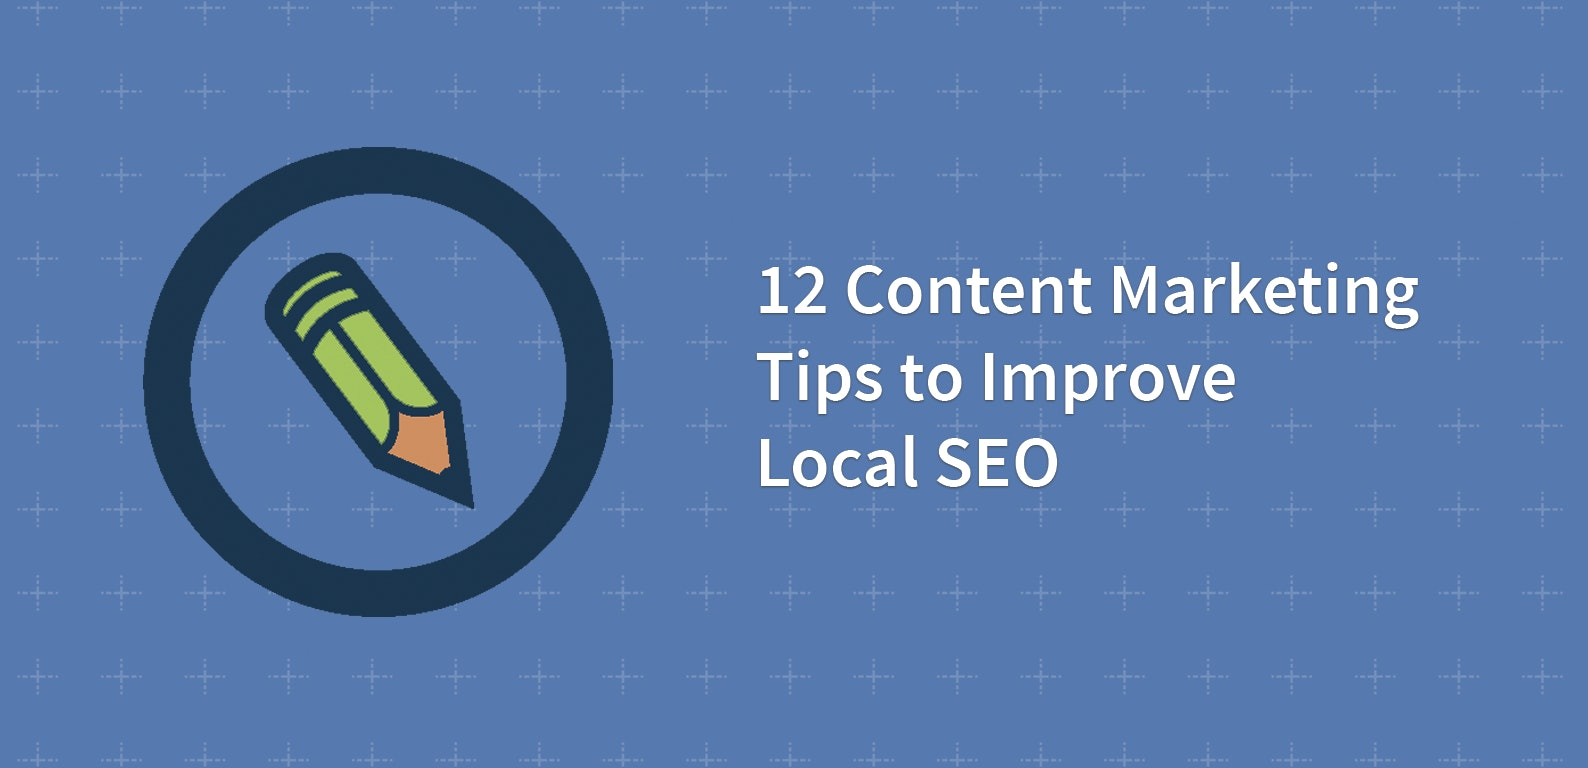 12 Content Marketing Tips to Improve Local SEO